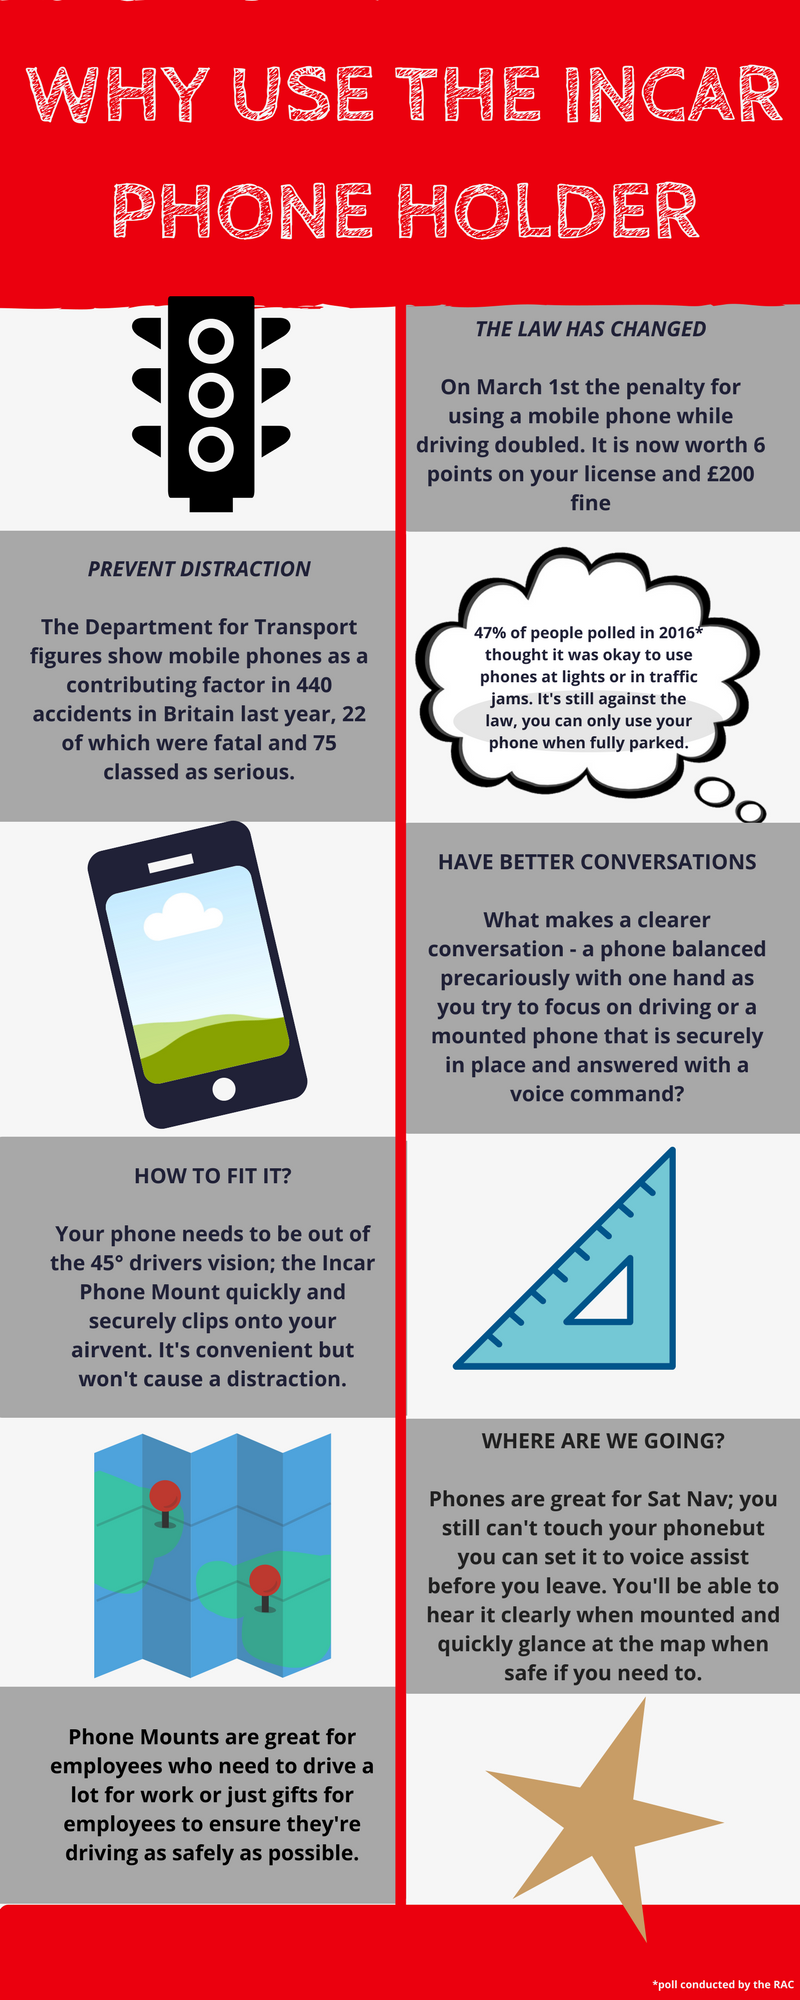 Infographic showing the benefits of using an Incar Phone Holder